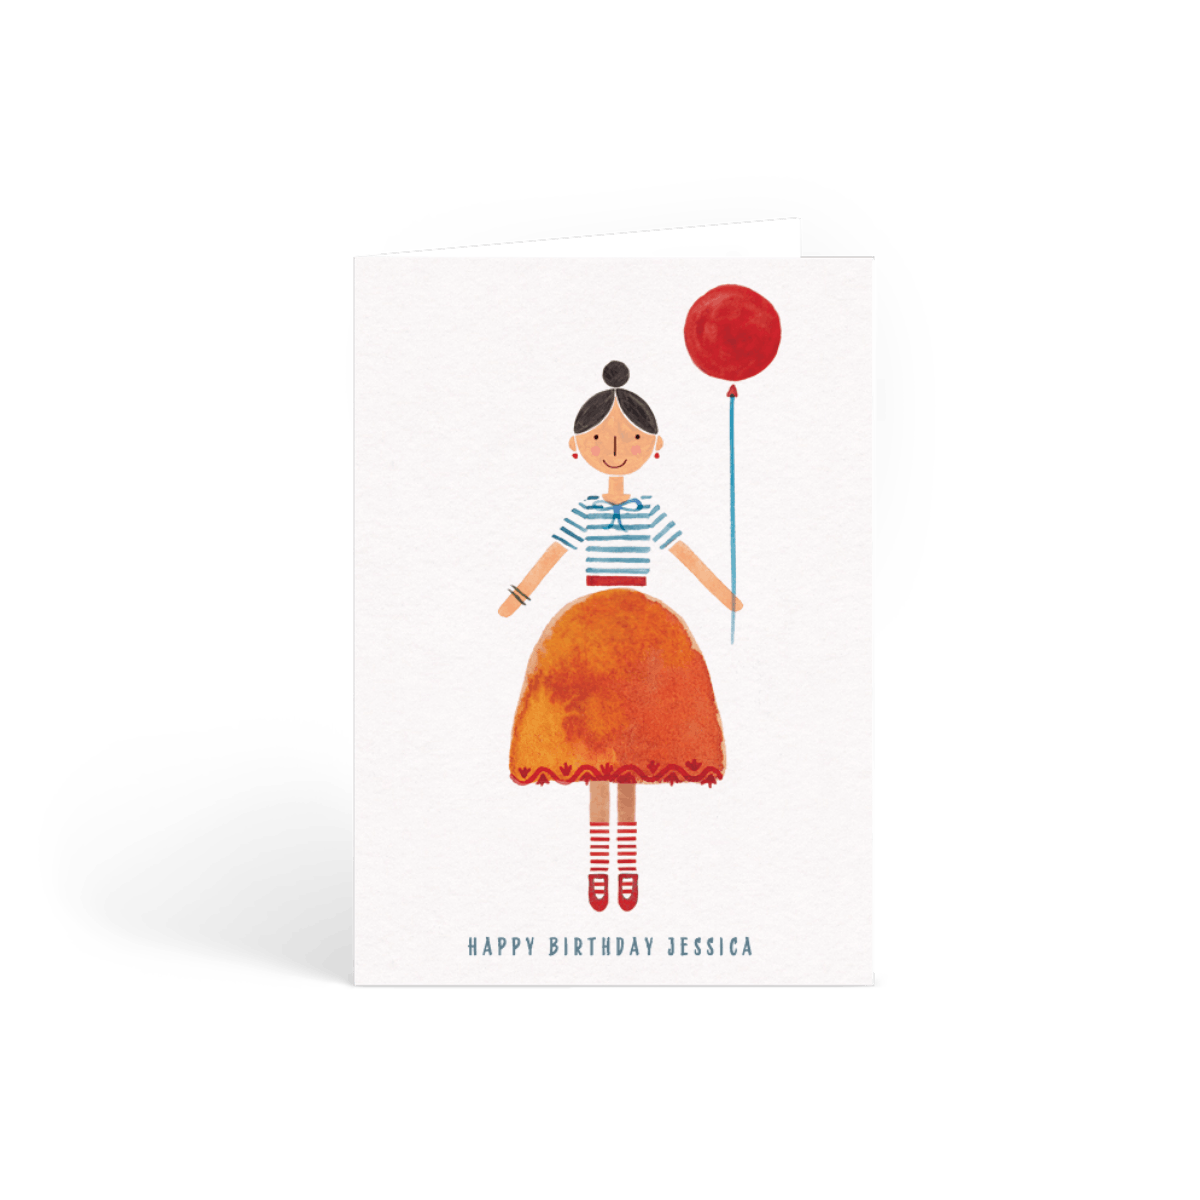 Https%3a%2f%2fwww.papier.com%2fproduct image%2f1141%2f2%2fa lady and her balloon 330 avant 1453909691.png?ixlib=rb 1.1